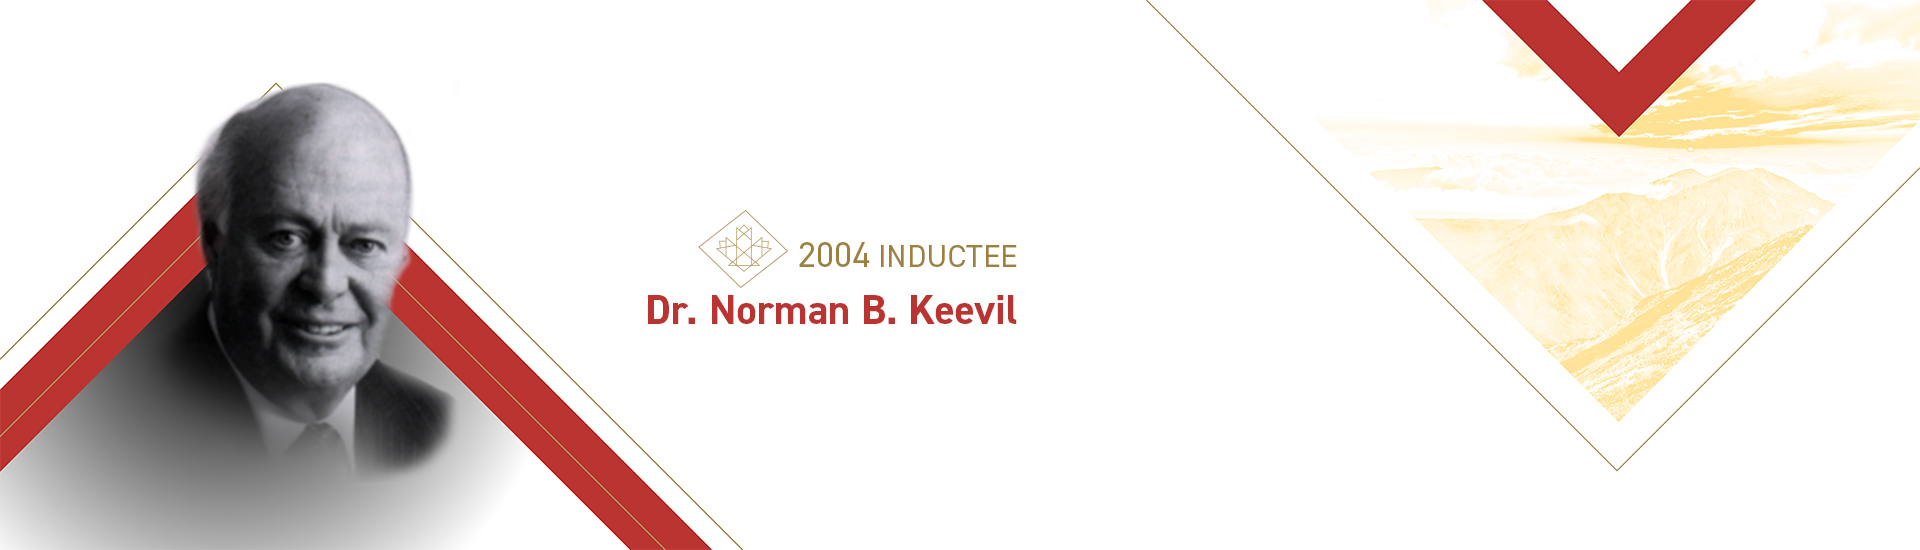 Dr. Norman B. Keevil (b. 1938)